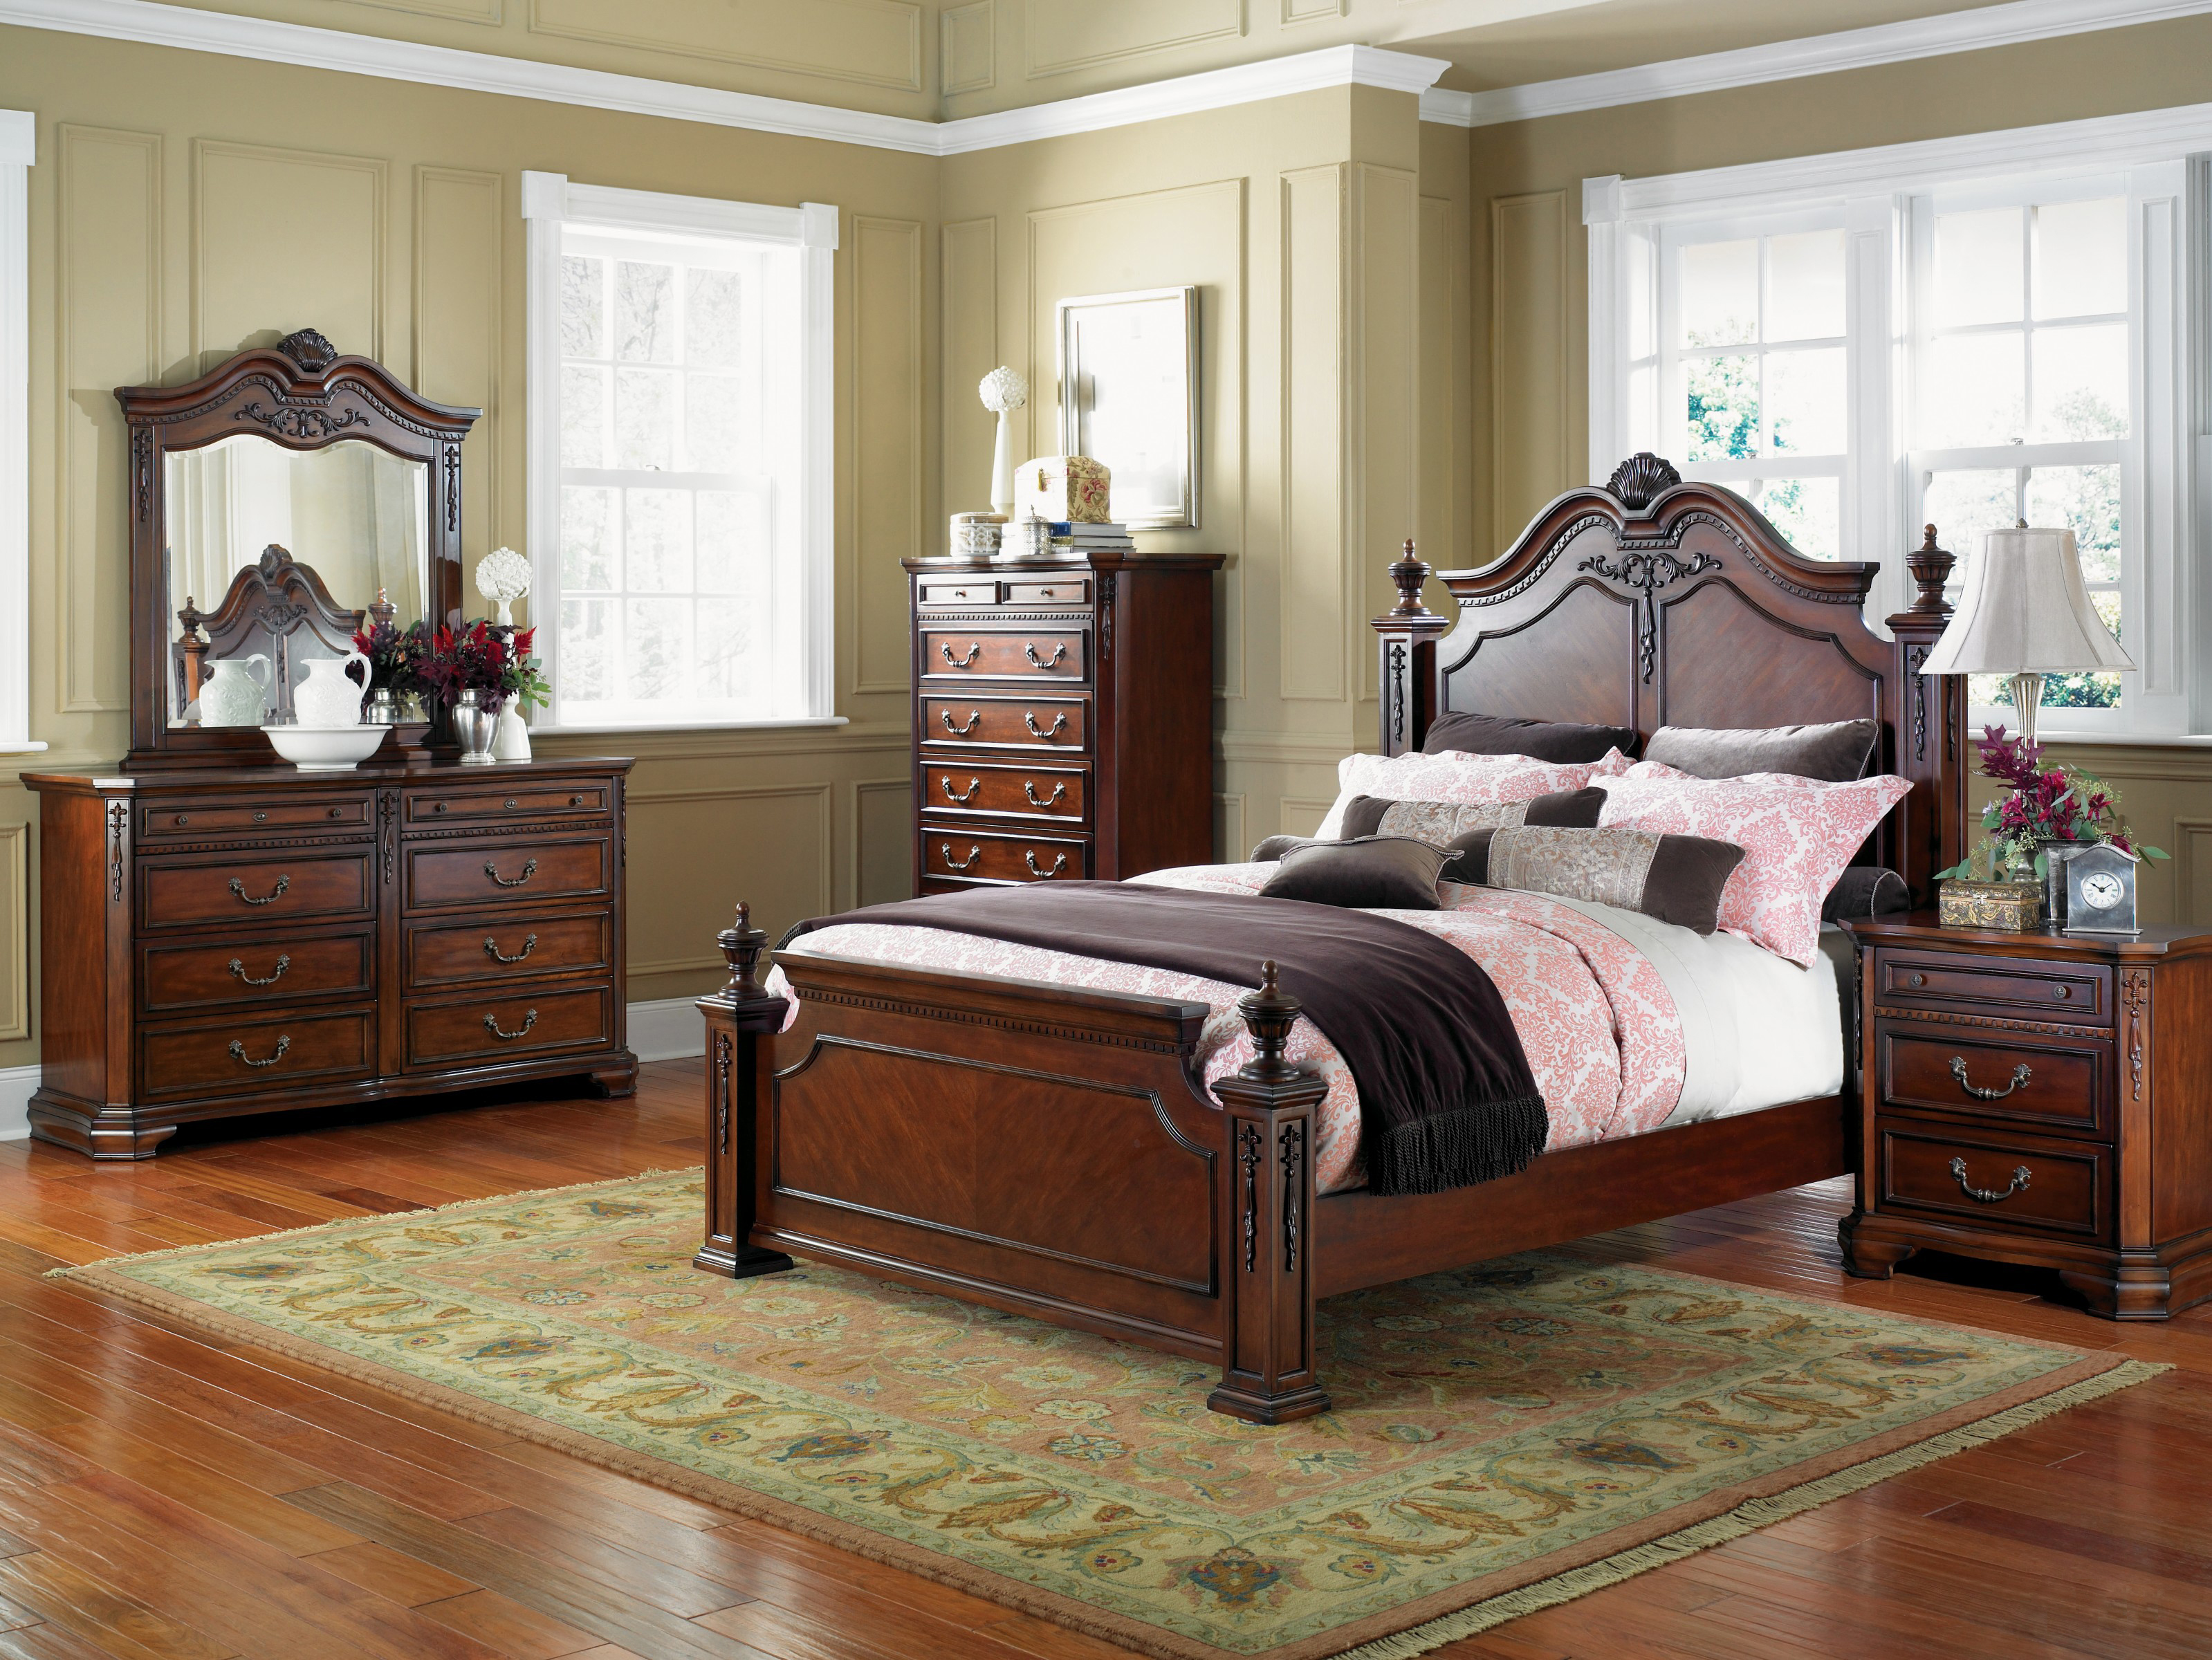 Outstanding Bedroom Furniture 3198 x 2400 · 3937 kB · jpeg